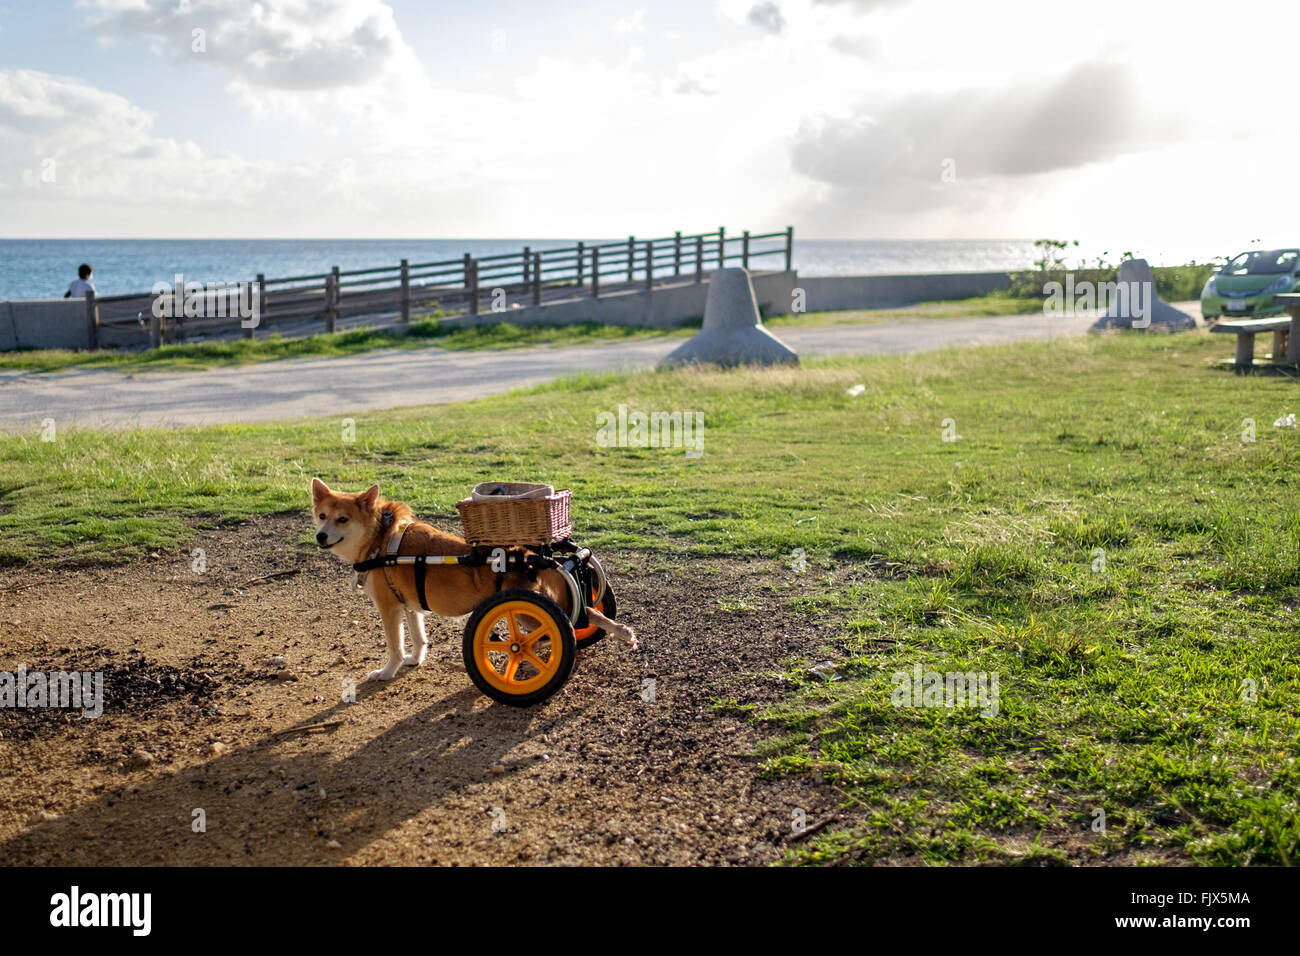 Trailer Tied To Dog On Field - Stock Image